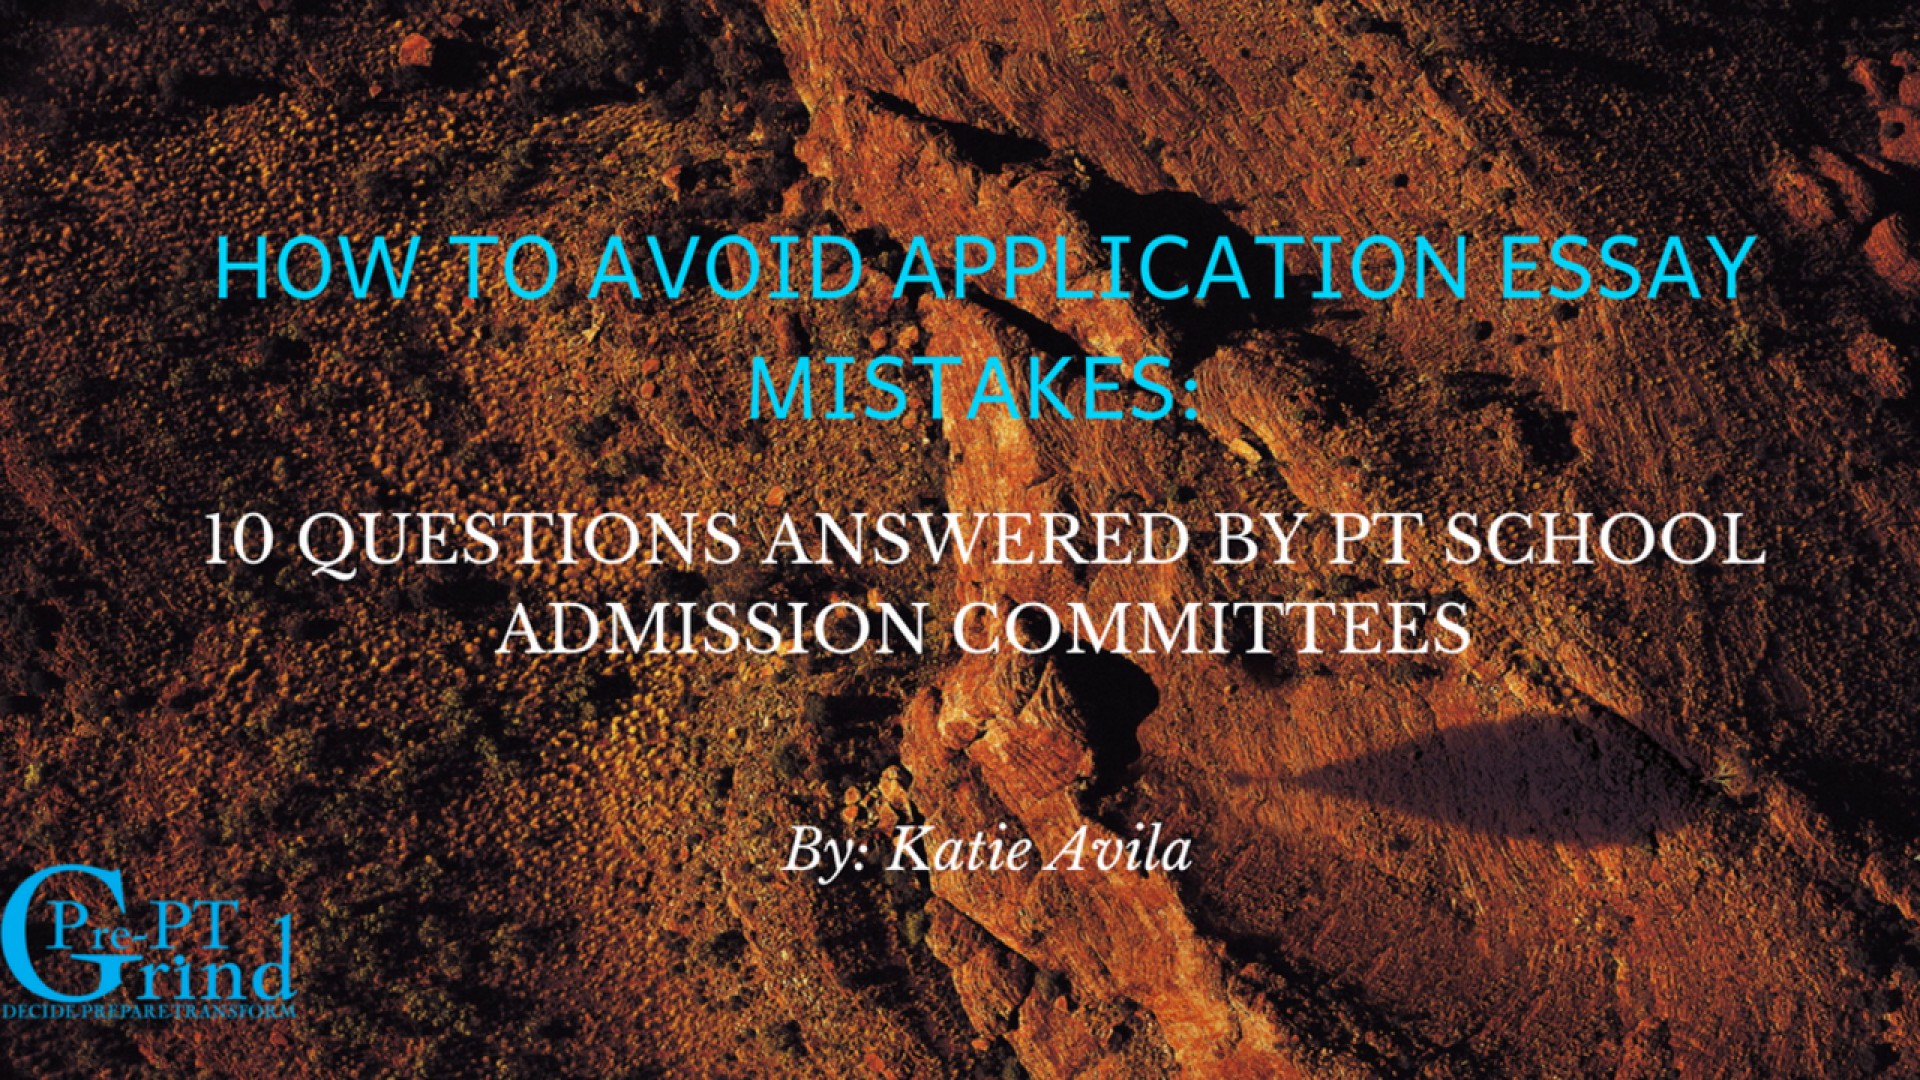 003 Fefntsd0spgrpfq06zzj How To Avoid Application Essay Mistakes 10 Questions Answered By Pt School Admission Committees Ptcas Unusual 2019 Examples 2018 Tips 1920